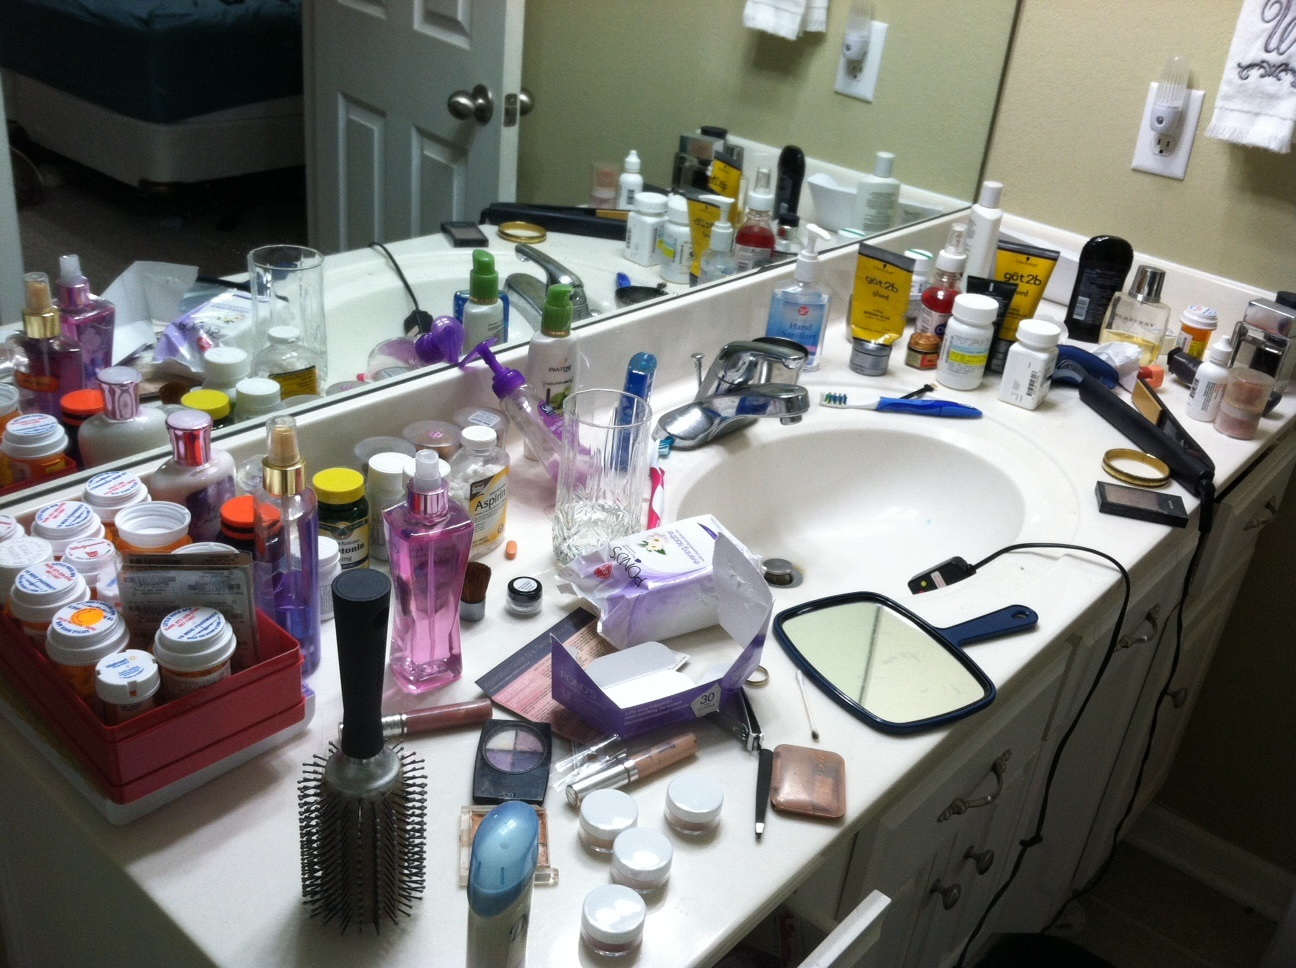 Bathroom Organization  Before And After Pics  Don t Judge Me. Mad Jackie  Bathroom Organization  Before And After Pics  Don t